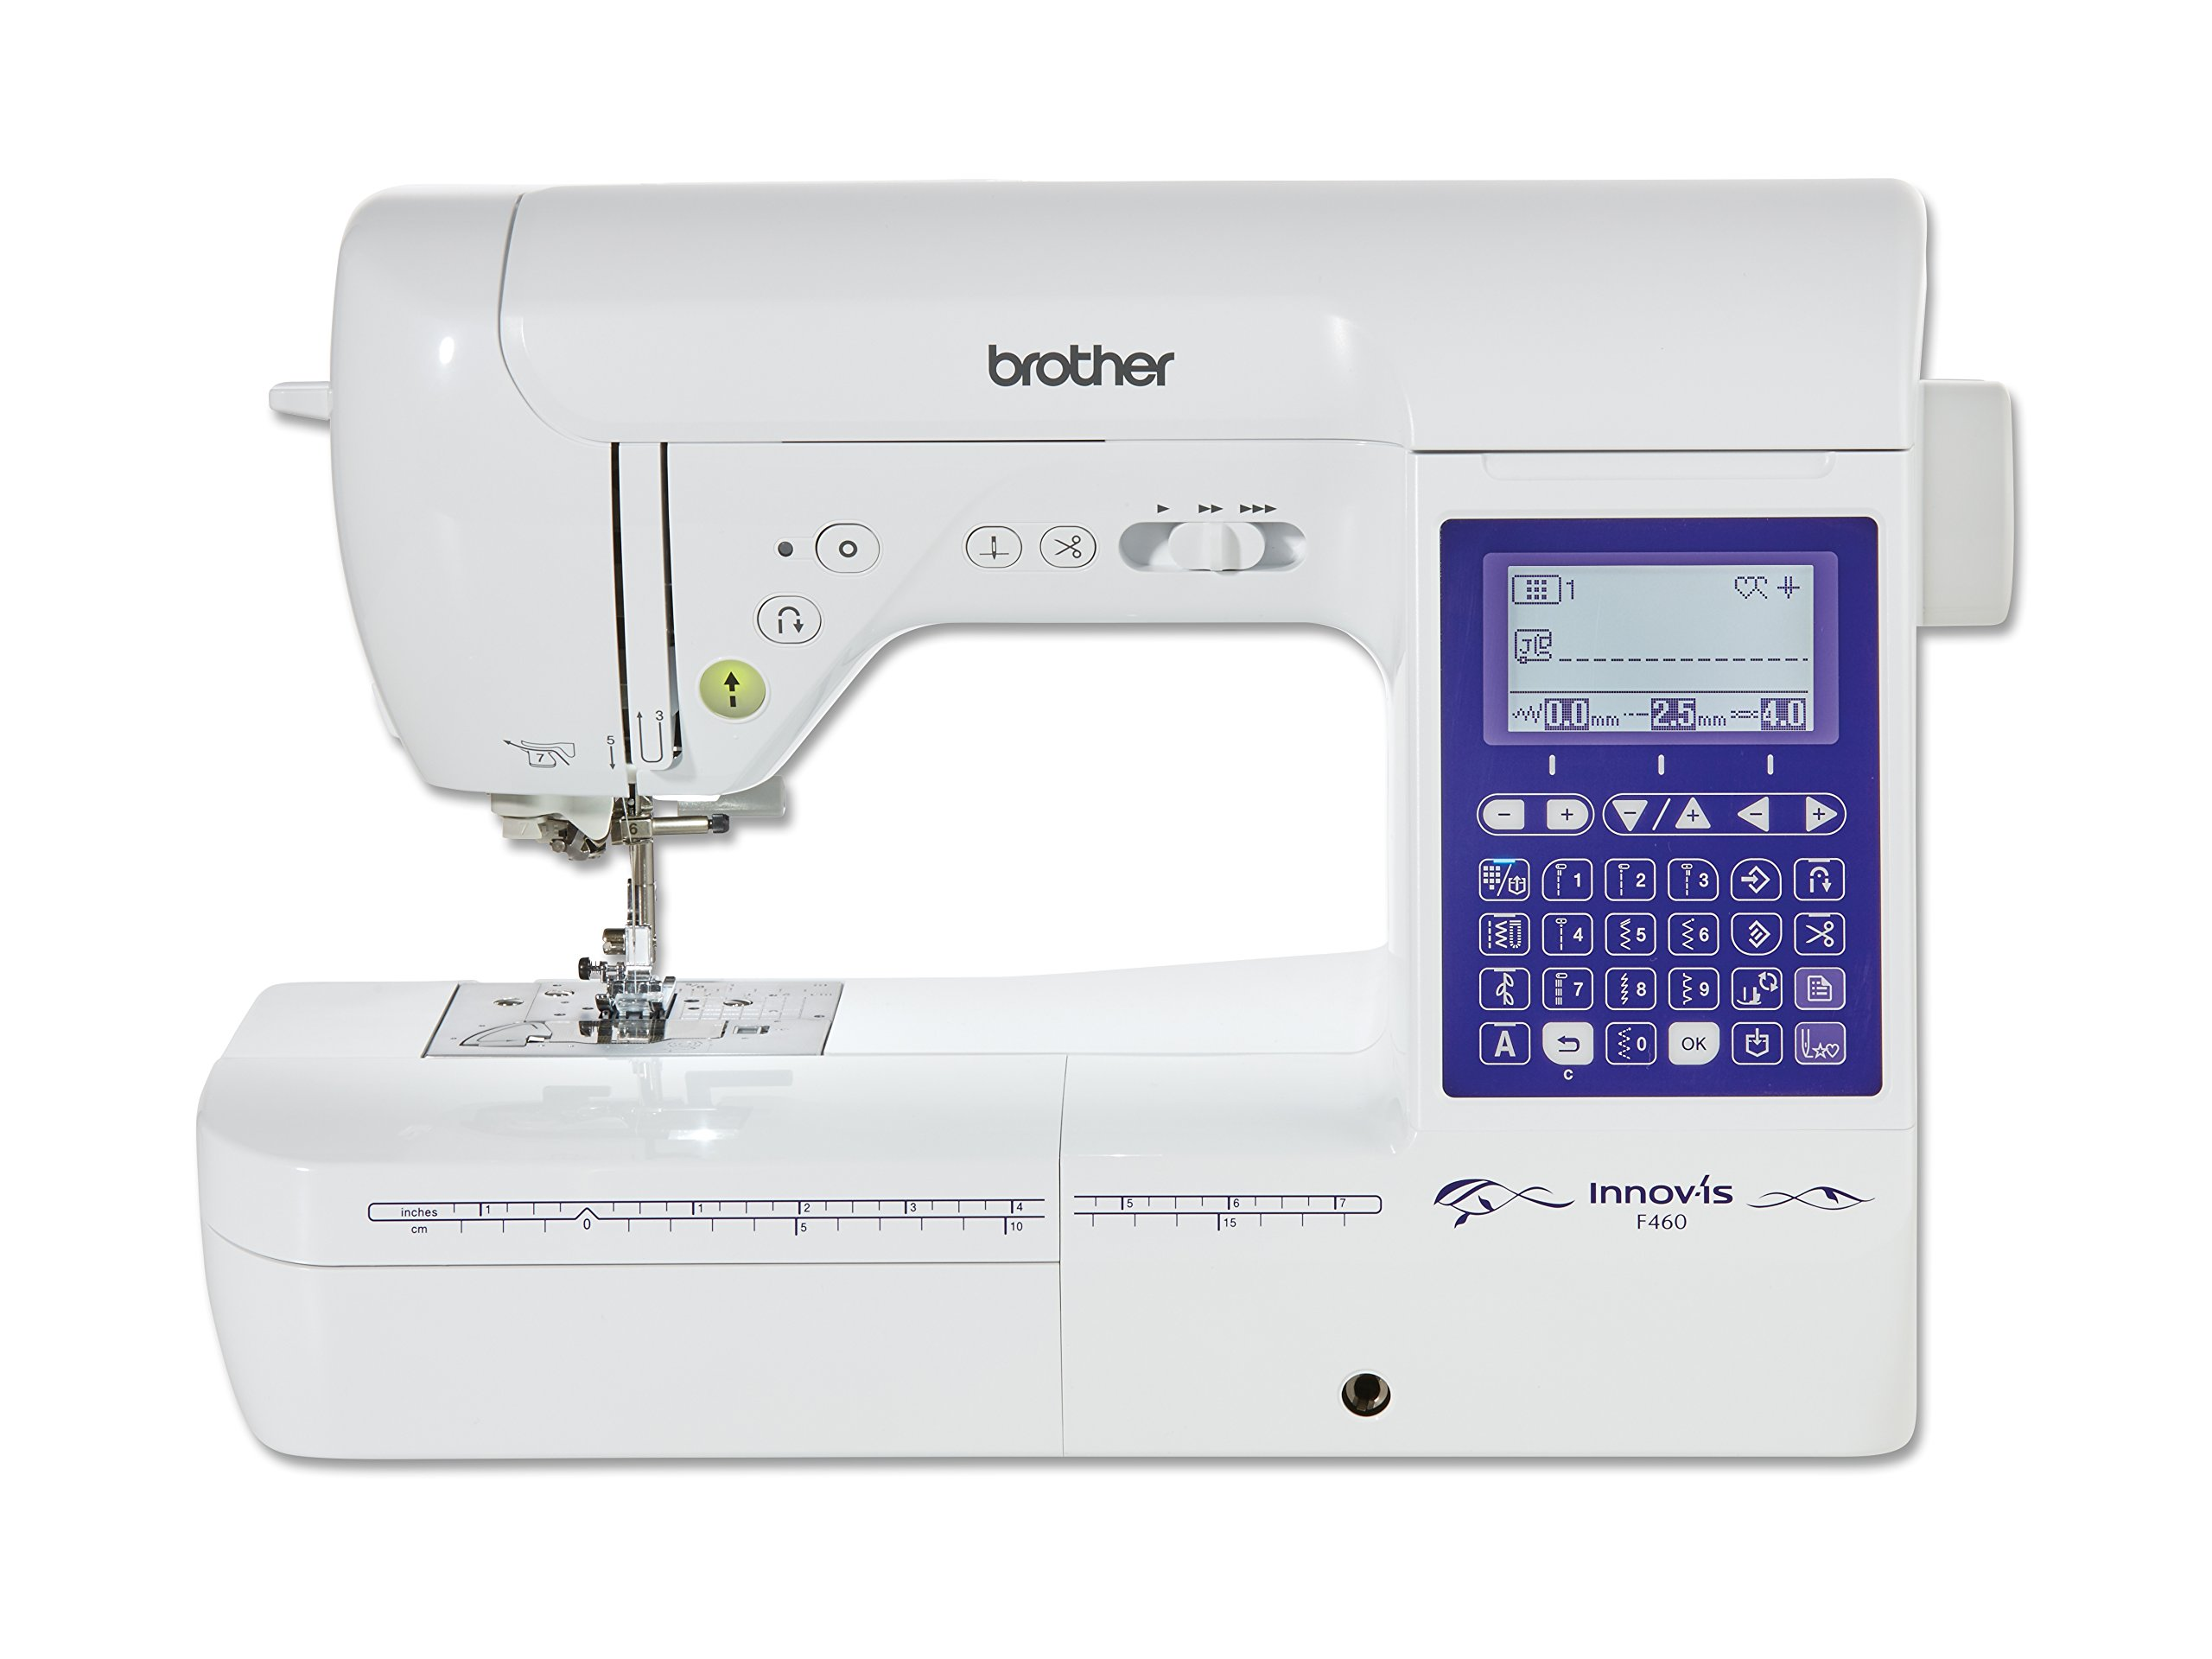 Brother Innovis F460 Maquina De Coser, Blanco, Cm: Amazon.es: Hogar